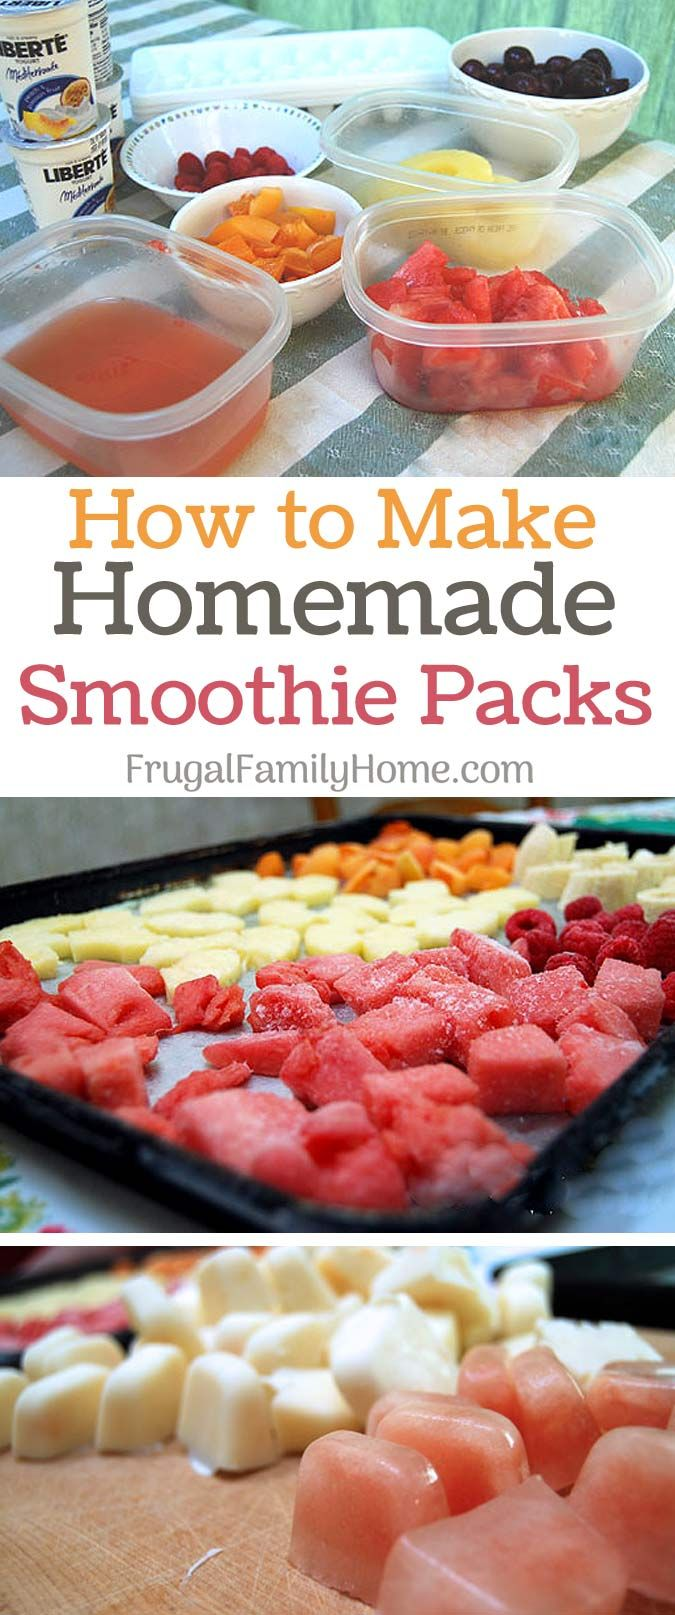 Homemade smoothie packs, a simple easy way to make smoothies any time of the day.